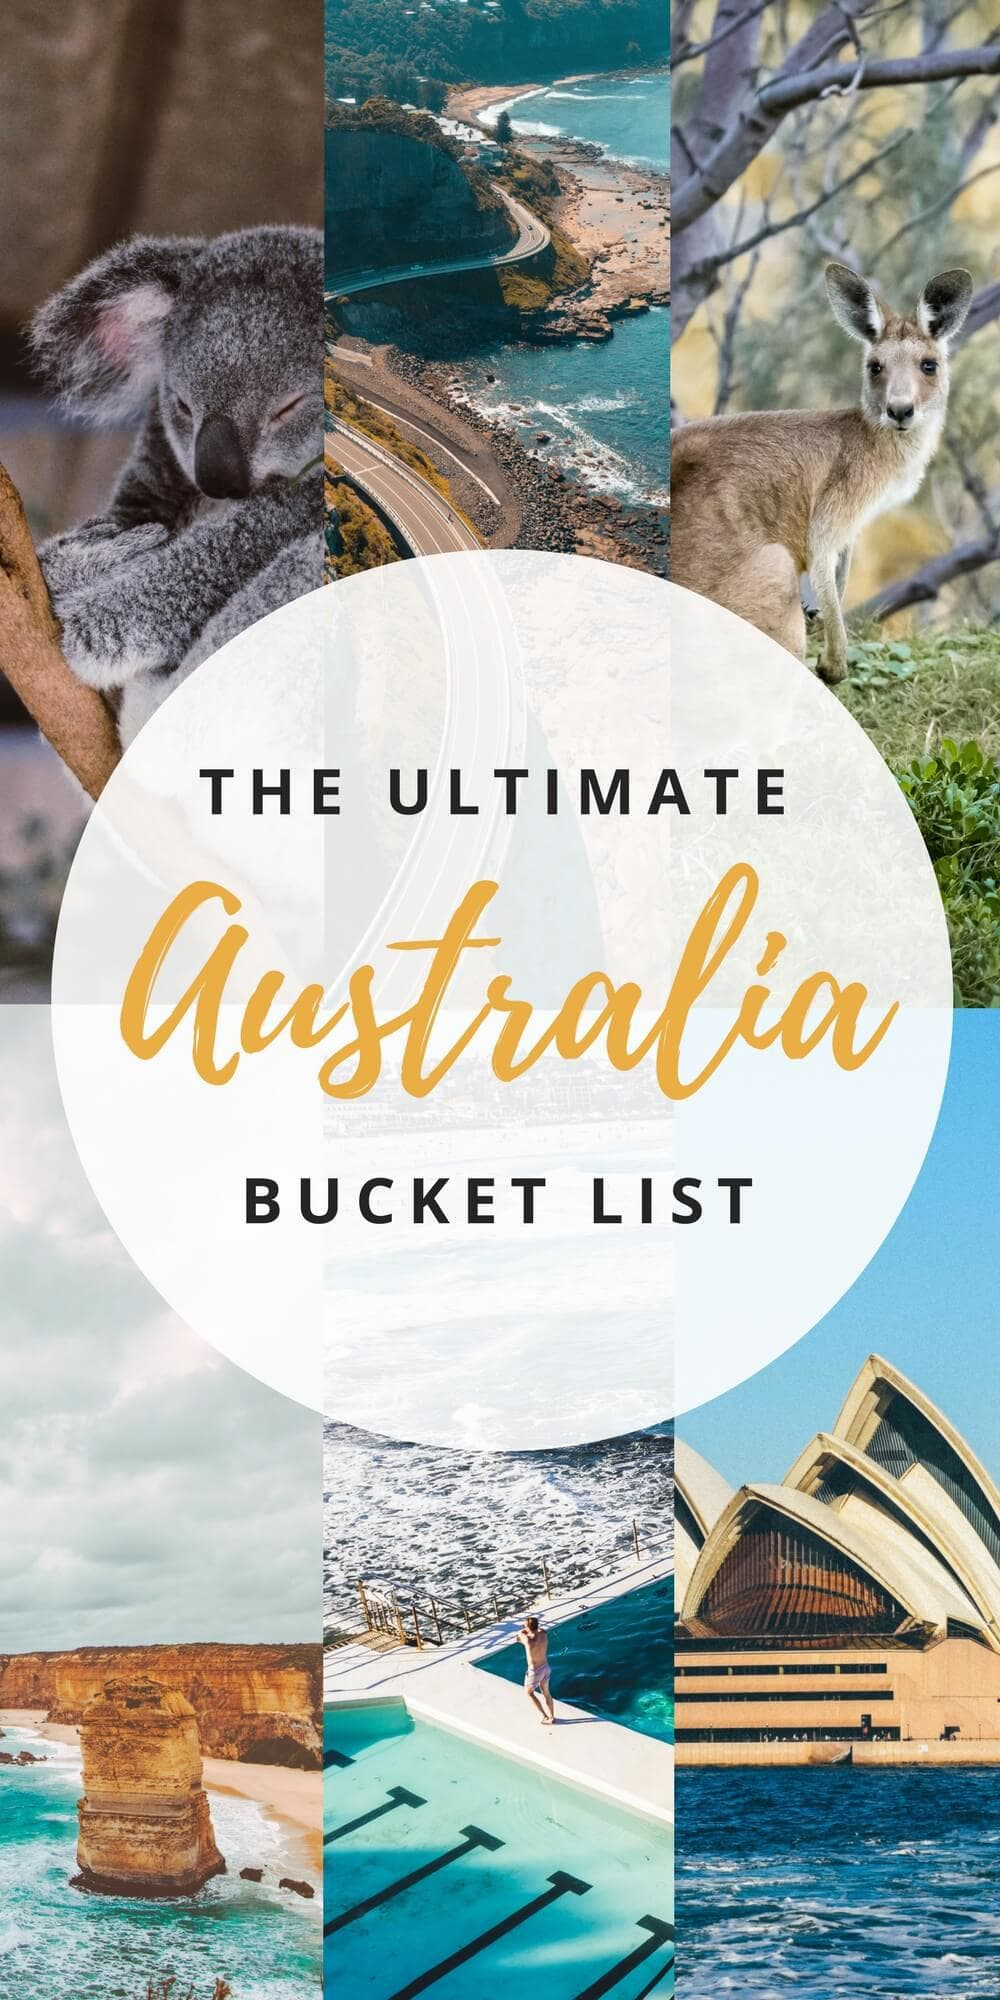 Check out these unique experiences to put on your Australia bucketlist